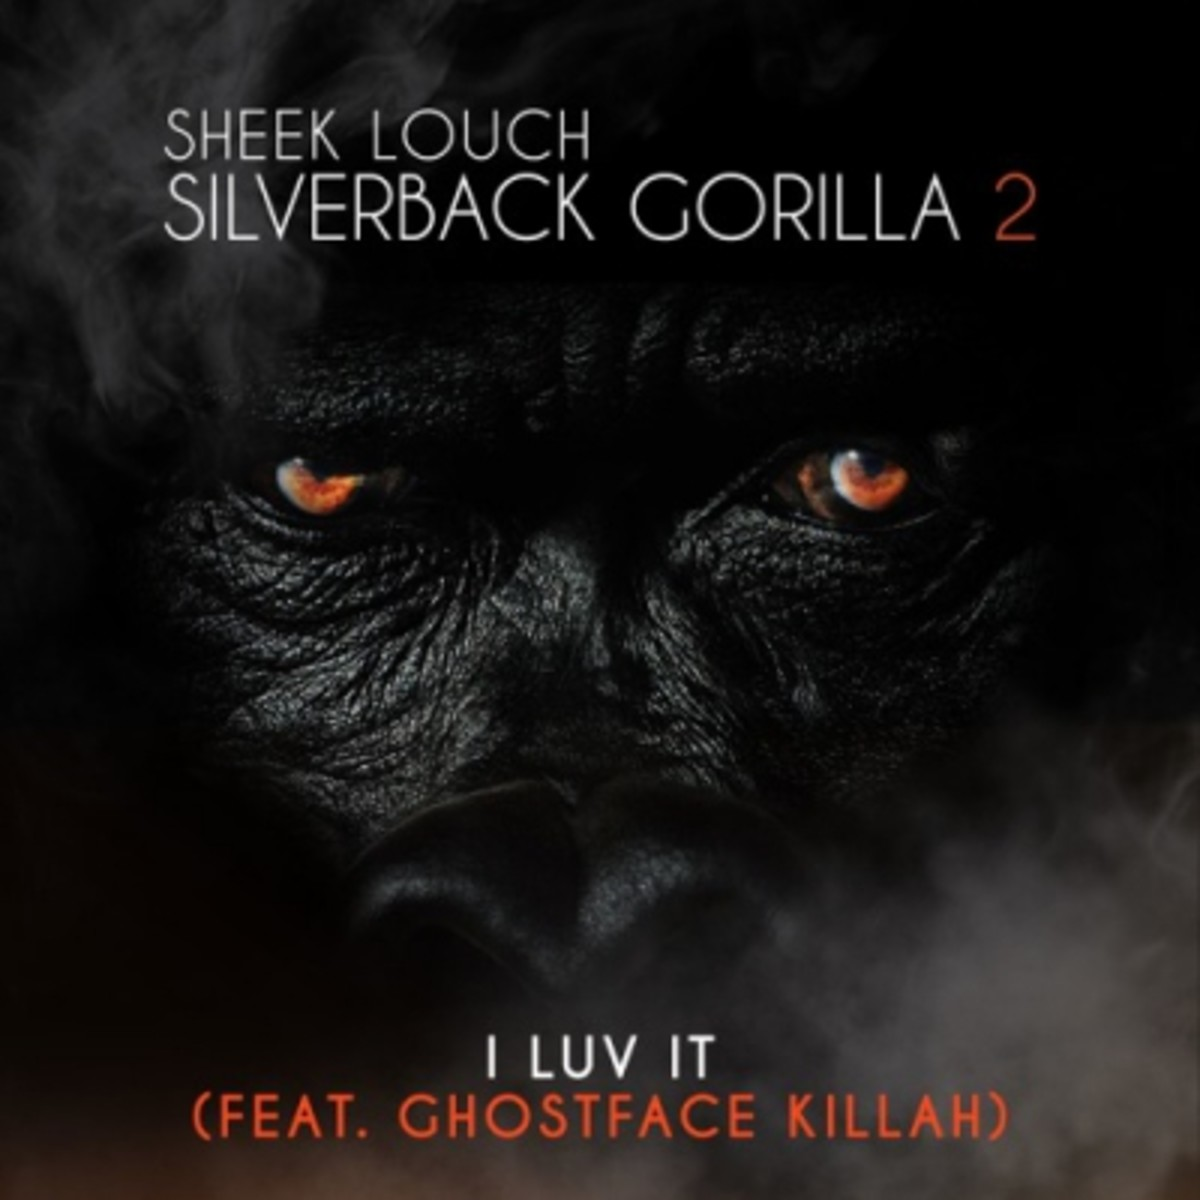 sheek-louch-i-luv-it.jpg